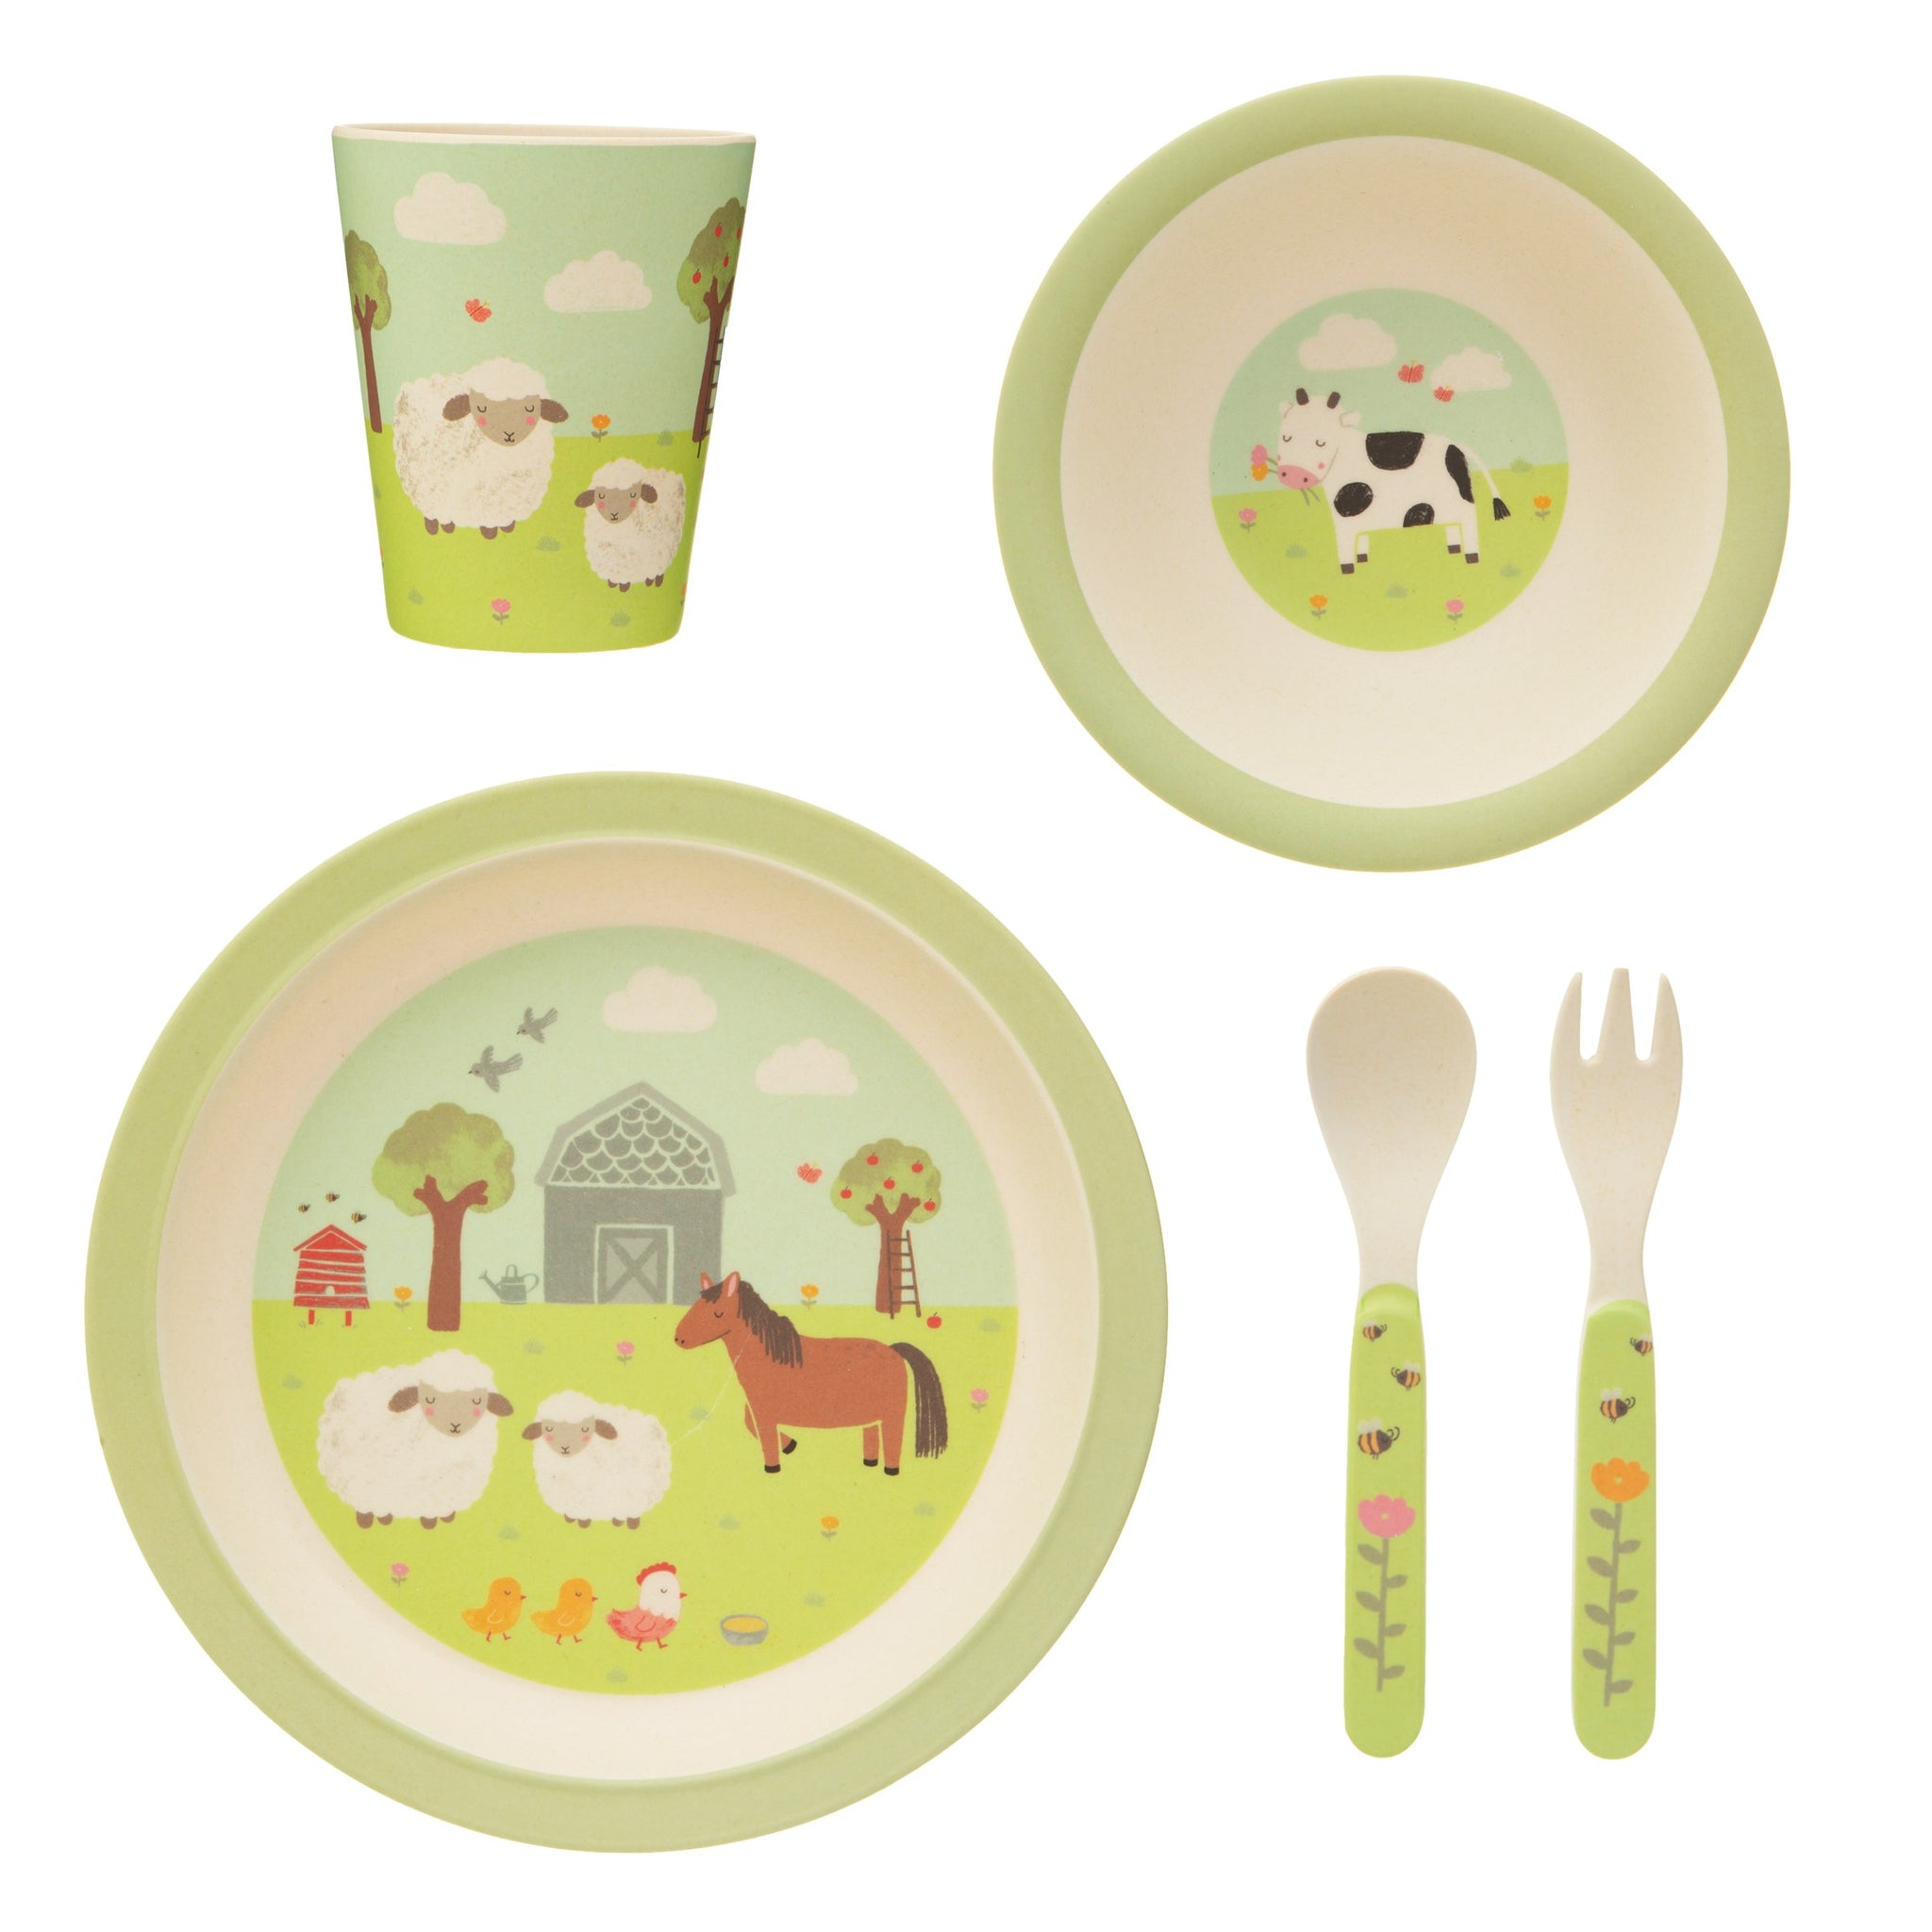 Children's Bamboo Table Set - KMHomeware